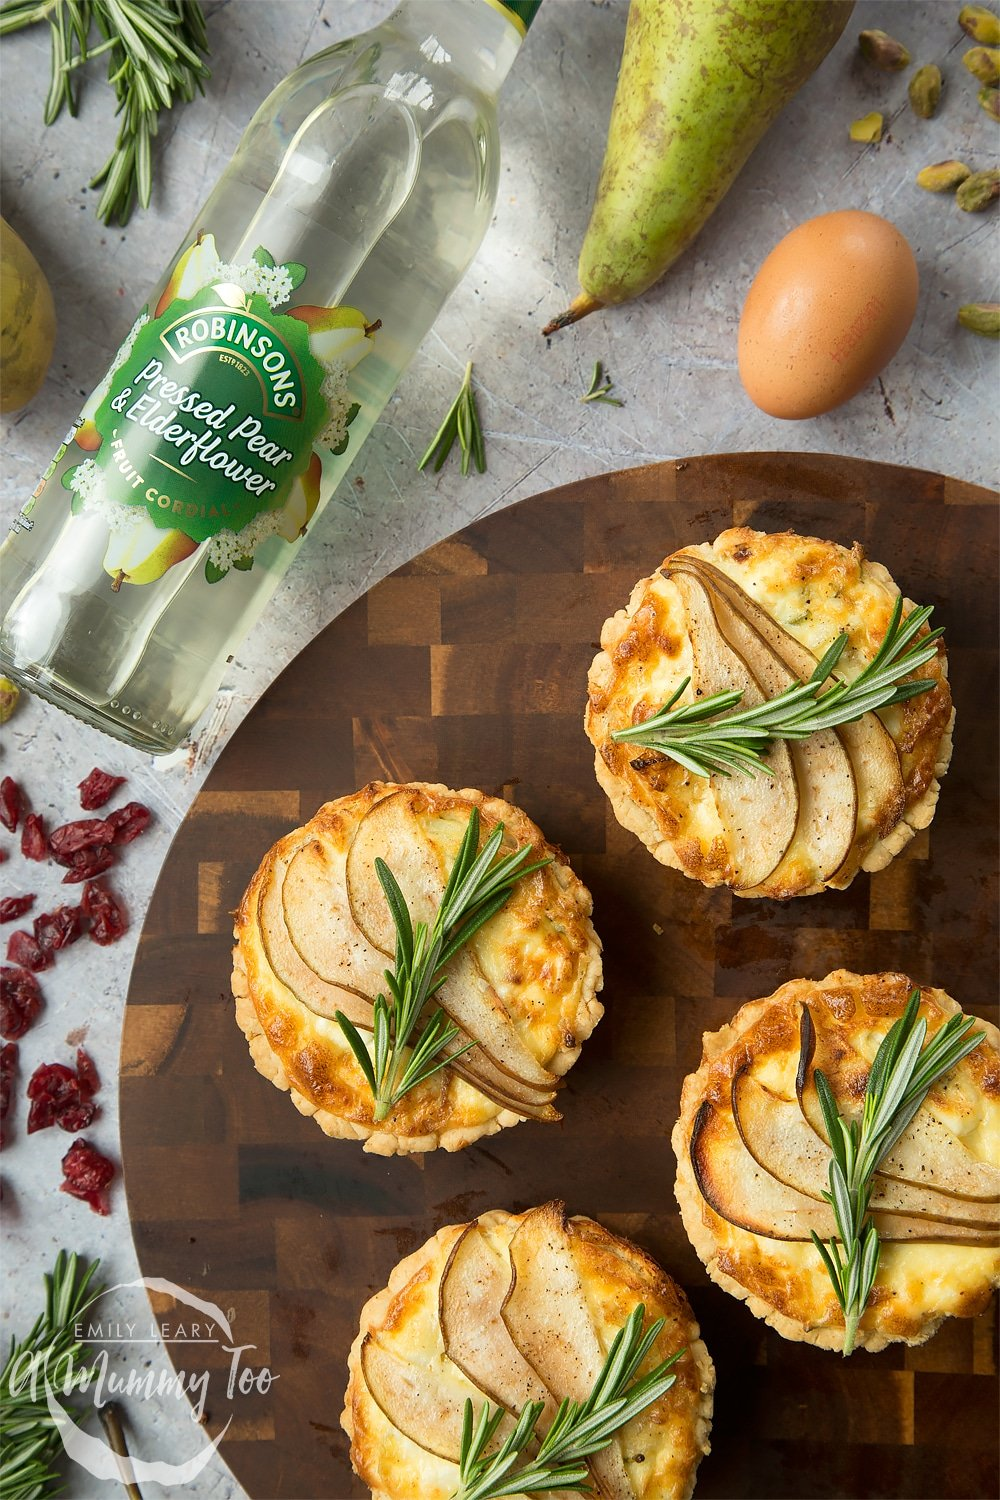 Overhead shot of a set of rosemary goat's cheese tarts with sliced bear with a botte of the Robbinsons pressed pear & elderflower on the side.